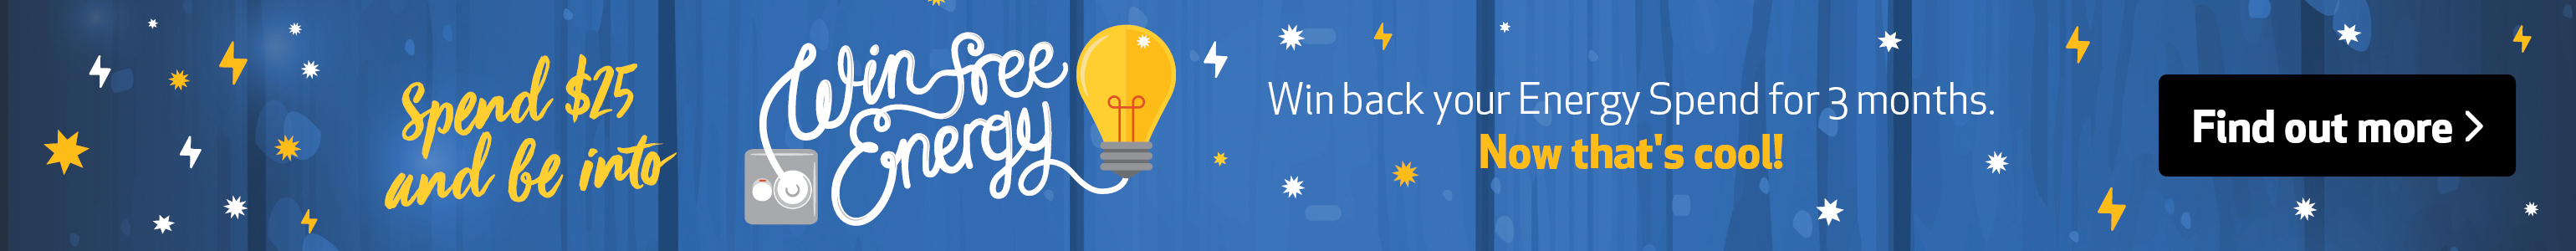 Spend $25 and qualify to go go into the draw to win back your energy spend for 3 months!